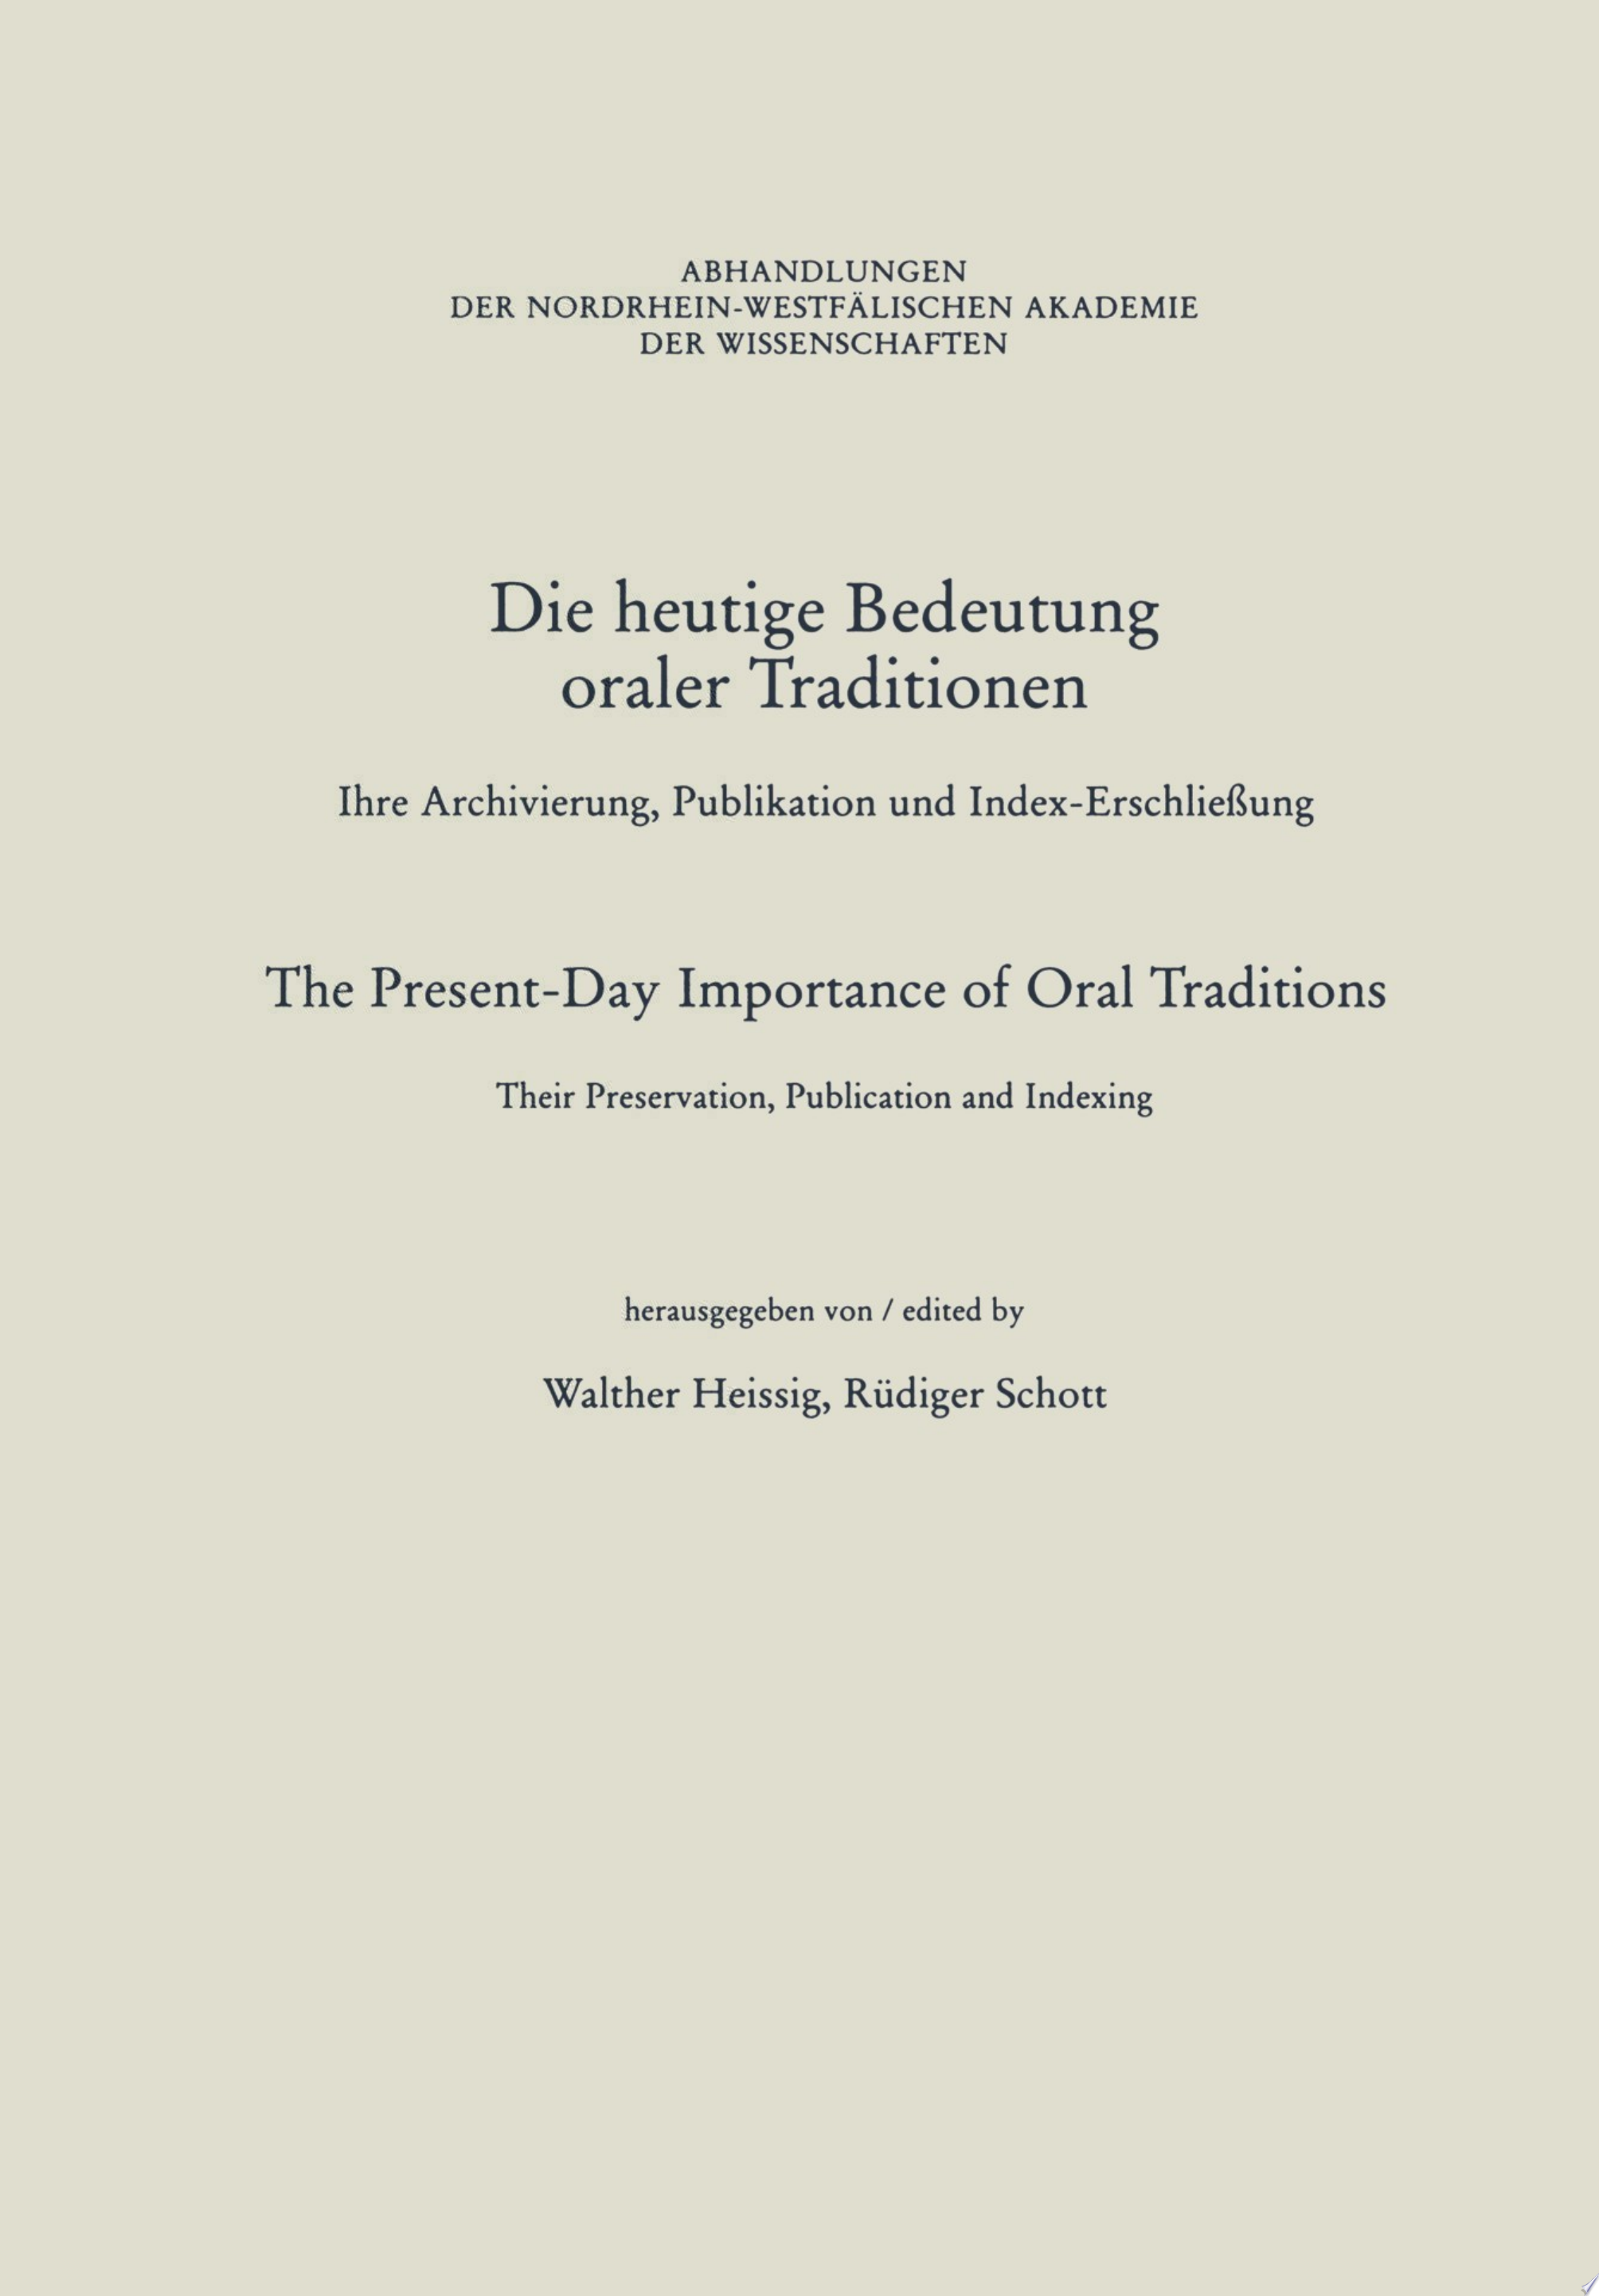 Die heutige Bedeutung oraler Traditionen   The Present Day Importance of Oral Traditions